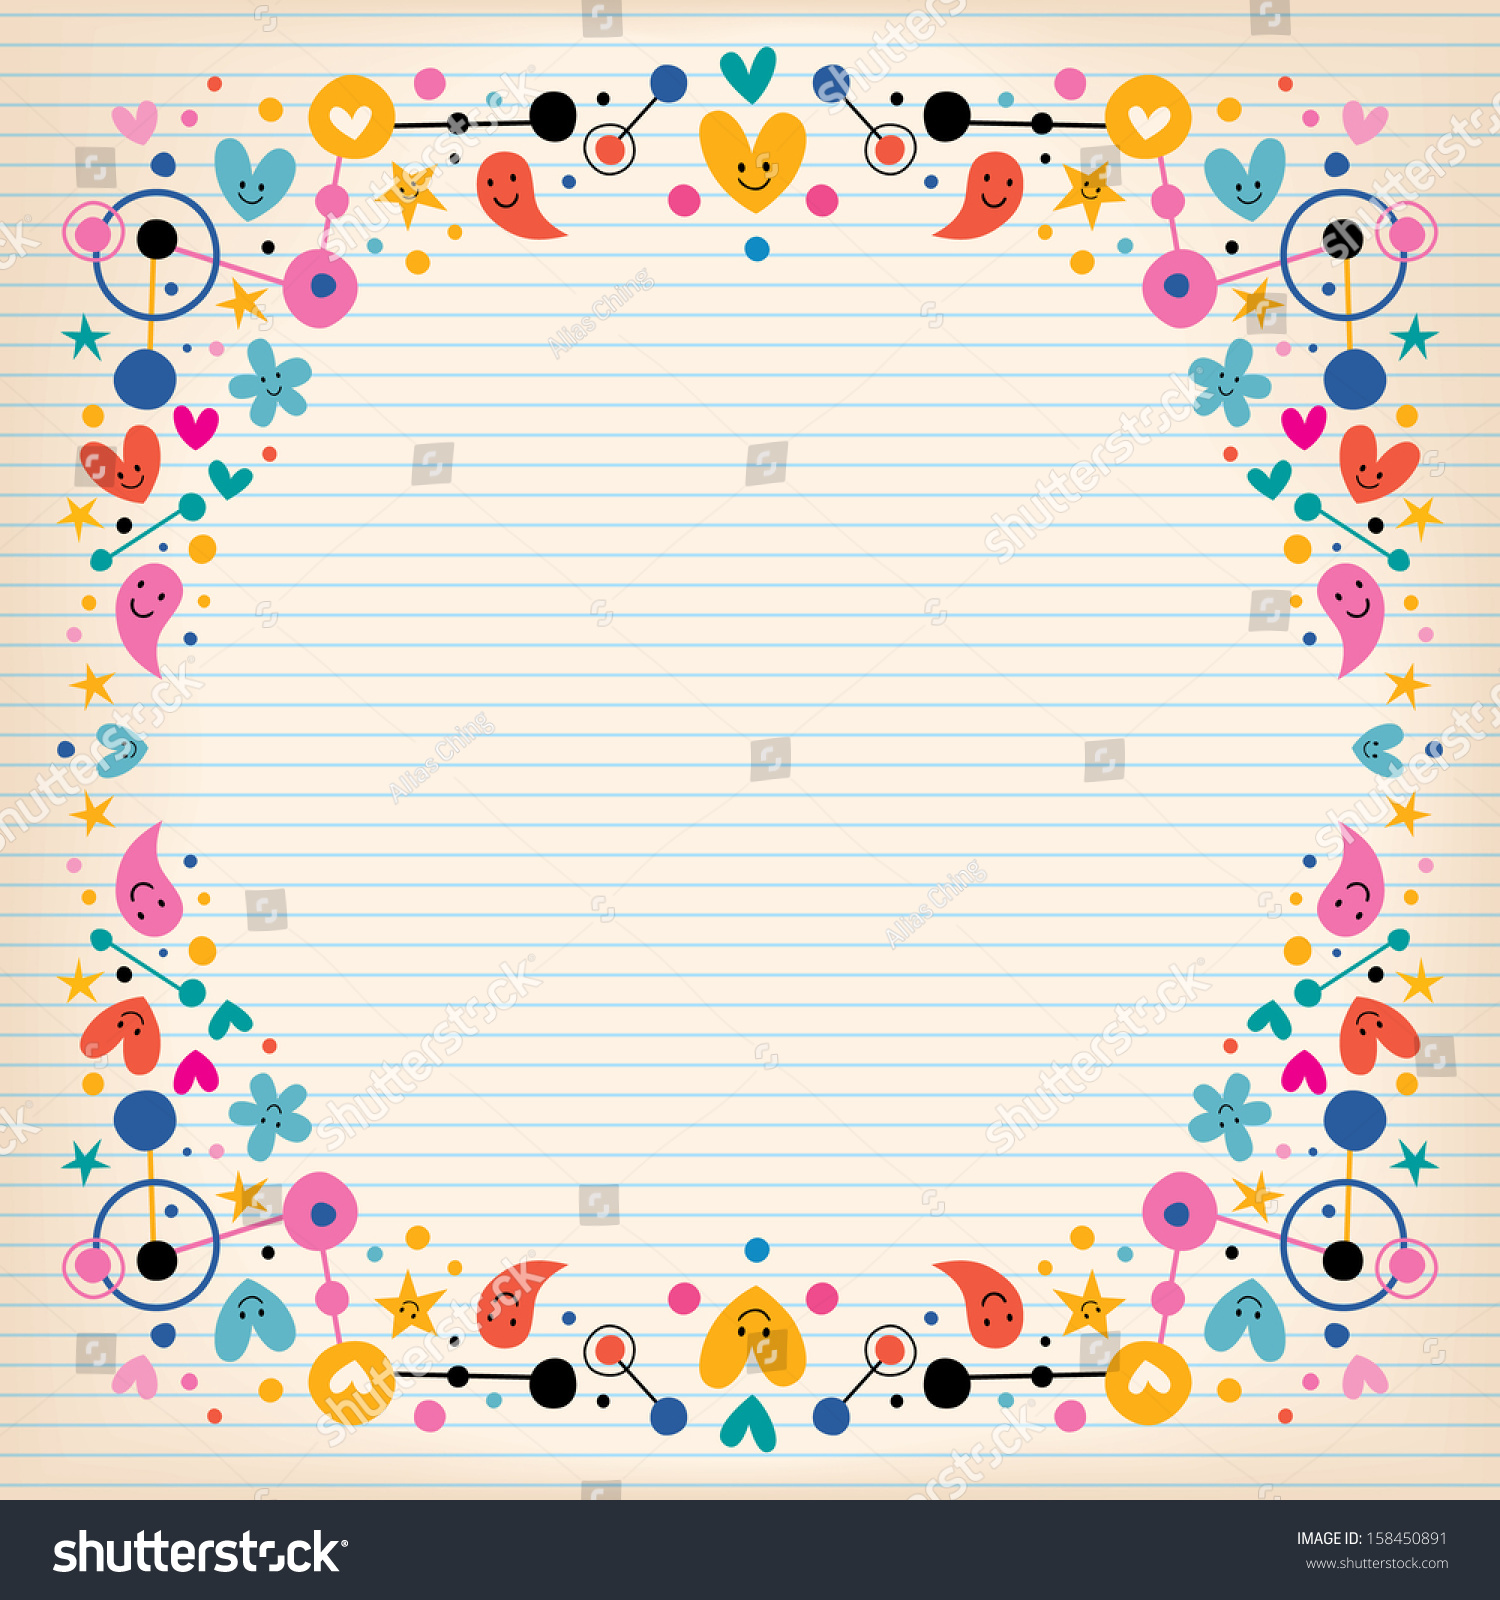 hearts dots flowers and stars funky note paper frame border